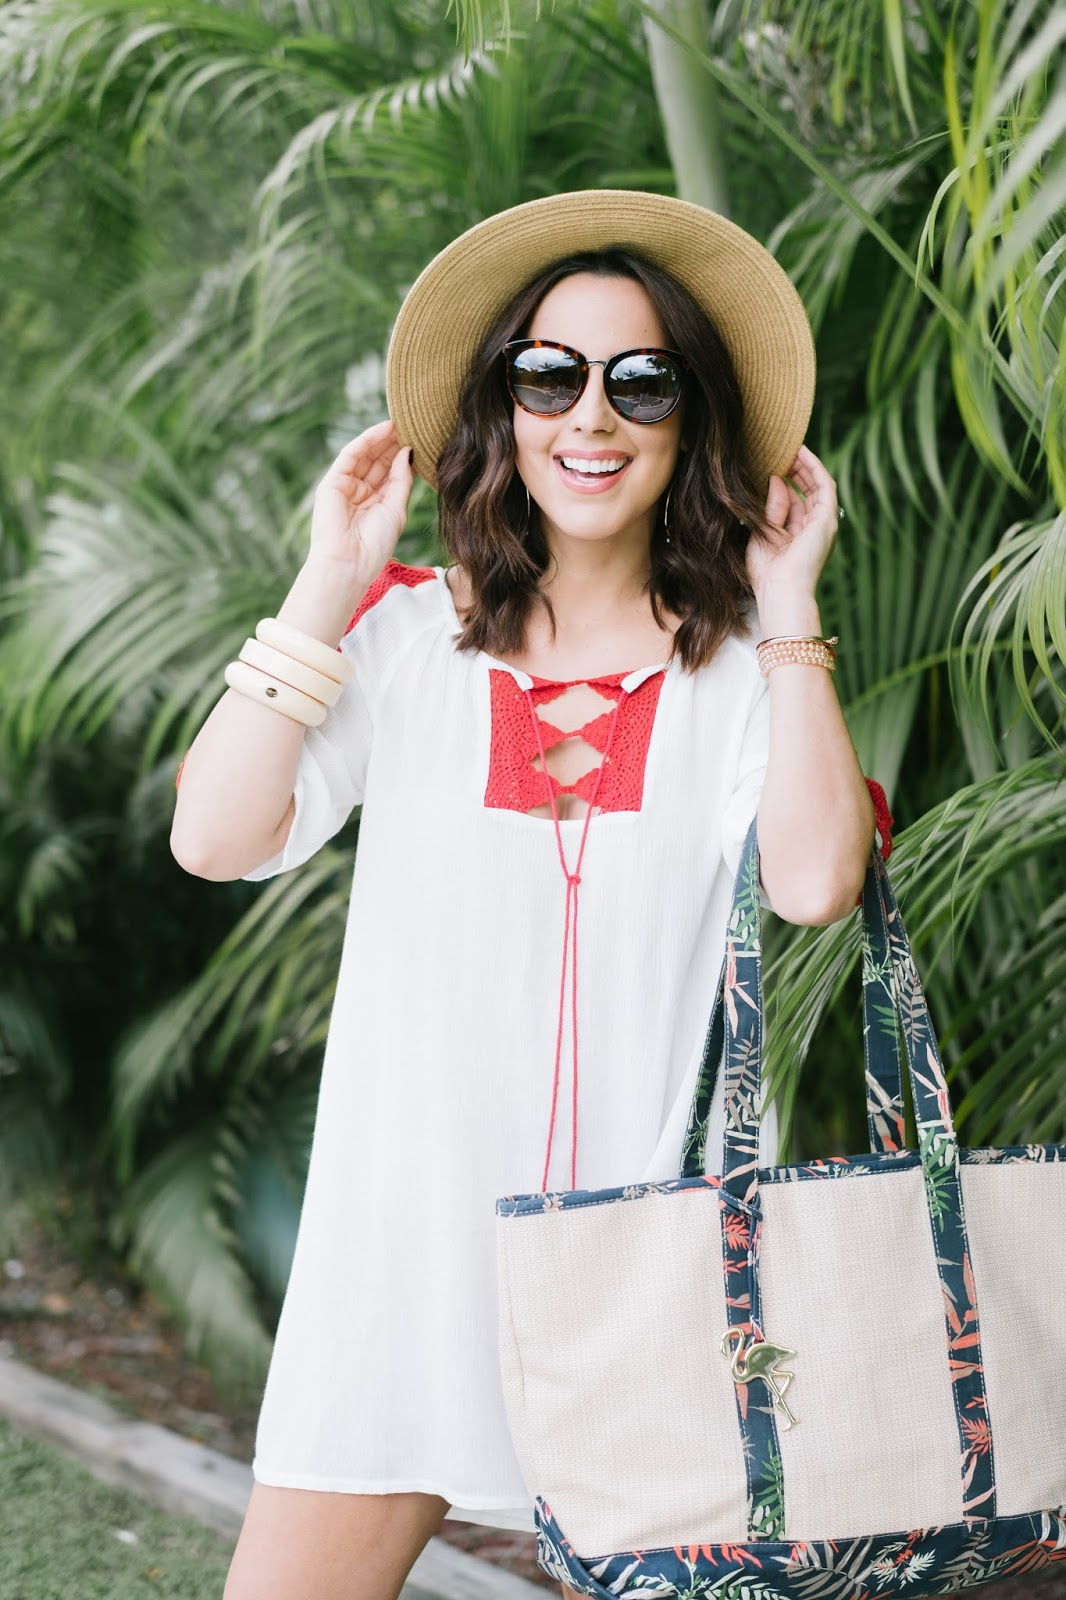 Fashion Blogger Kelly Saks wears beach chic attire